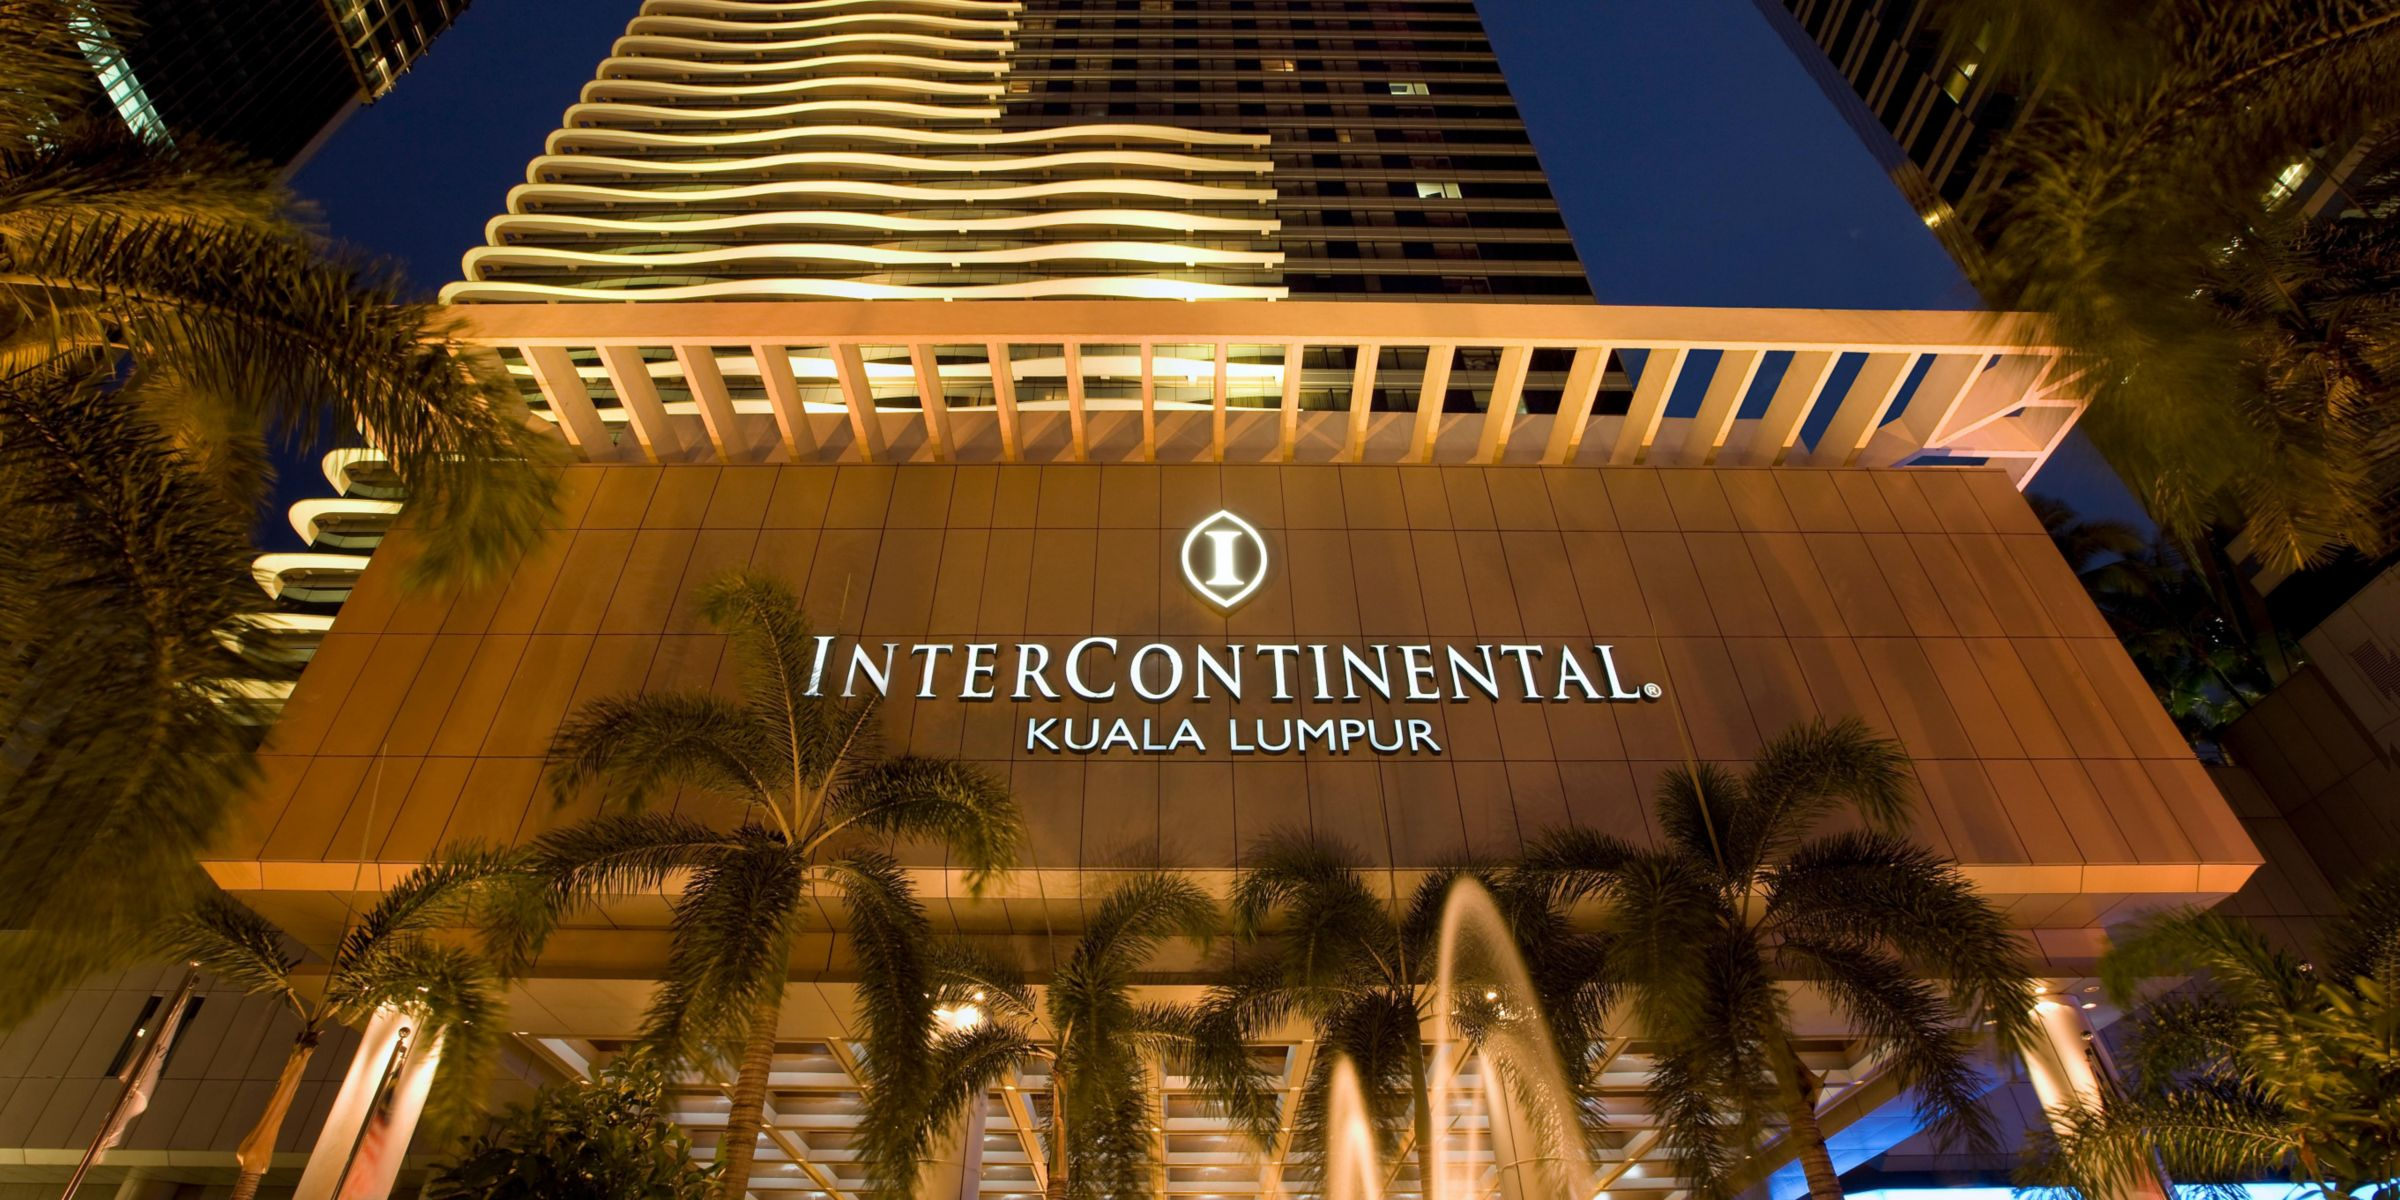 Hotel Exterior Facade Entrance Warm Welcome At InterContinental Kuala Lumpur